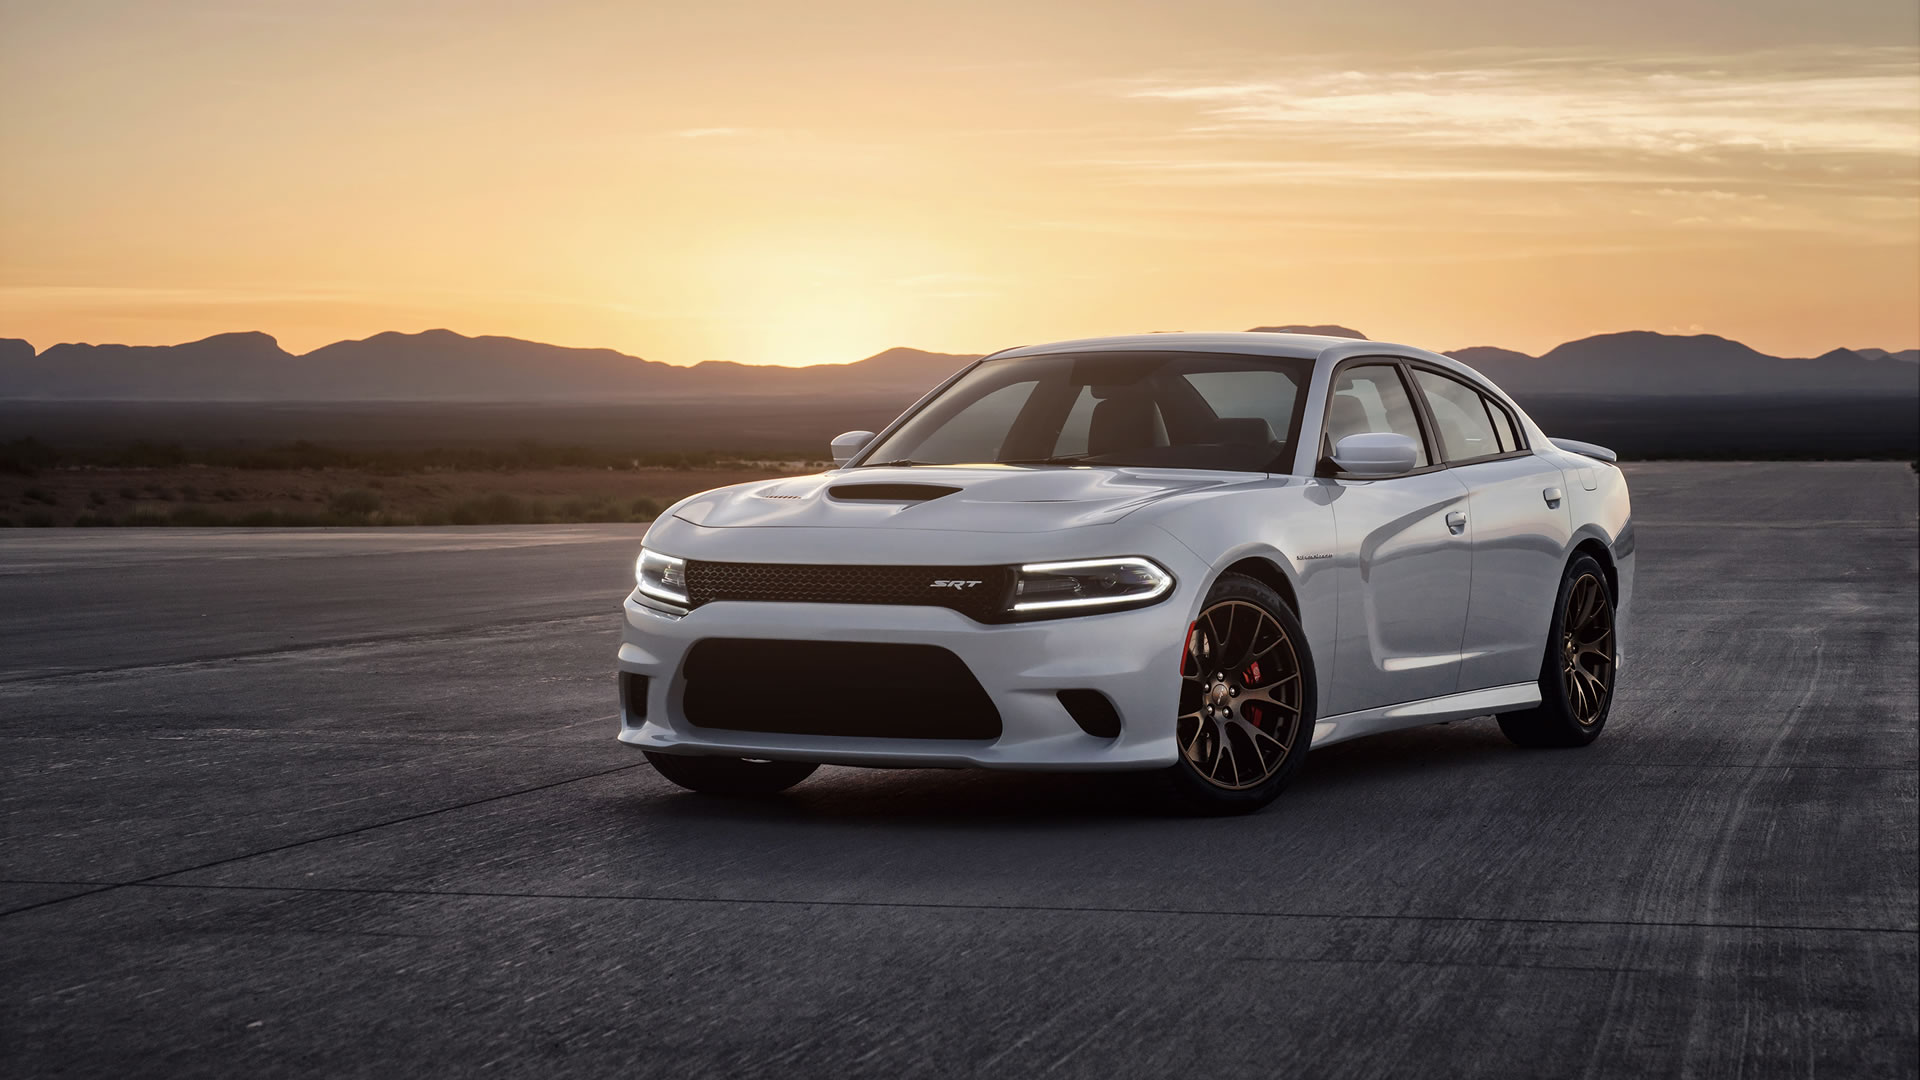 2015 Dodge Charger SRT Hellcat Wallpaper